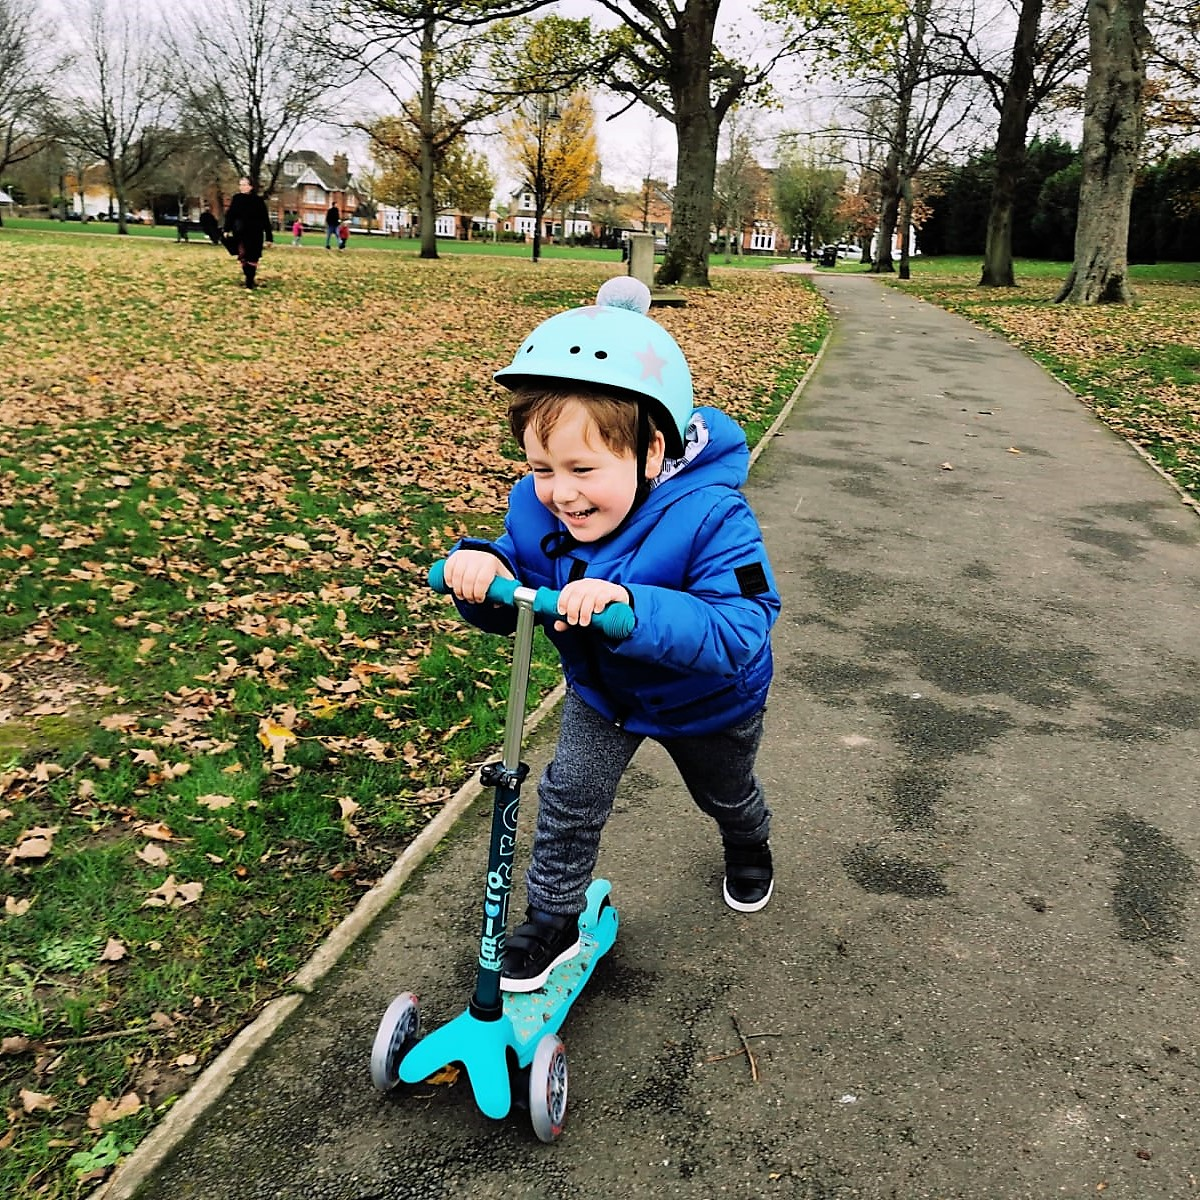 🛴Christmas Giveaway Glowing🛴  To enter RT & FOLLOW FrenchieMummy & @microscooters   https://t.co/WuSKtsgO6B  #microscooters #madeforadventure  #win #freebies giveaway #contest https://t.co/ZKOE0wBxE8